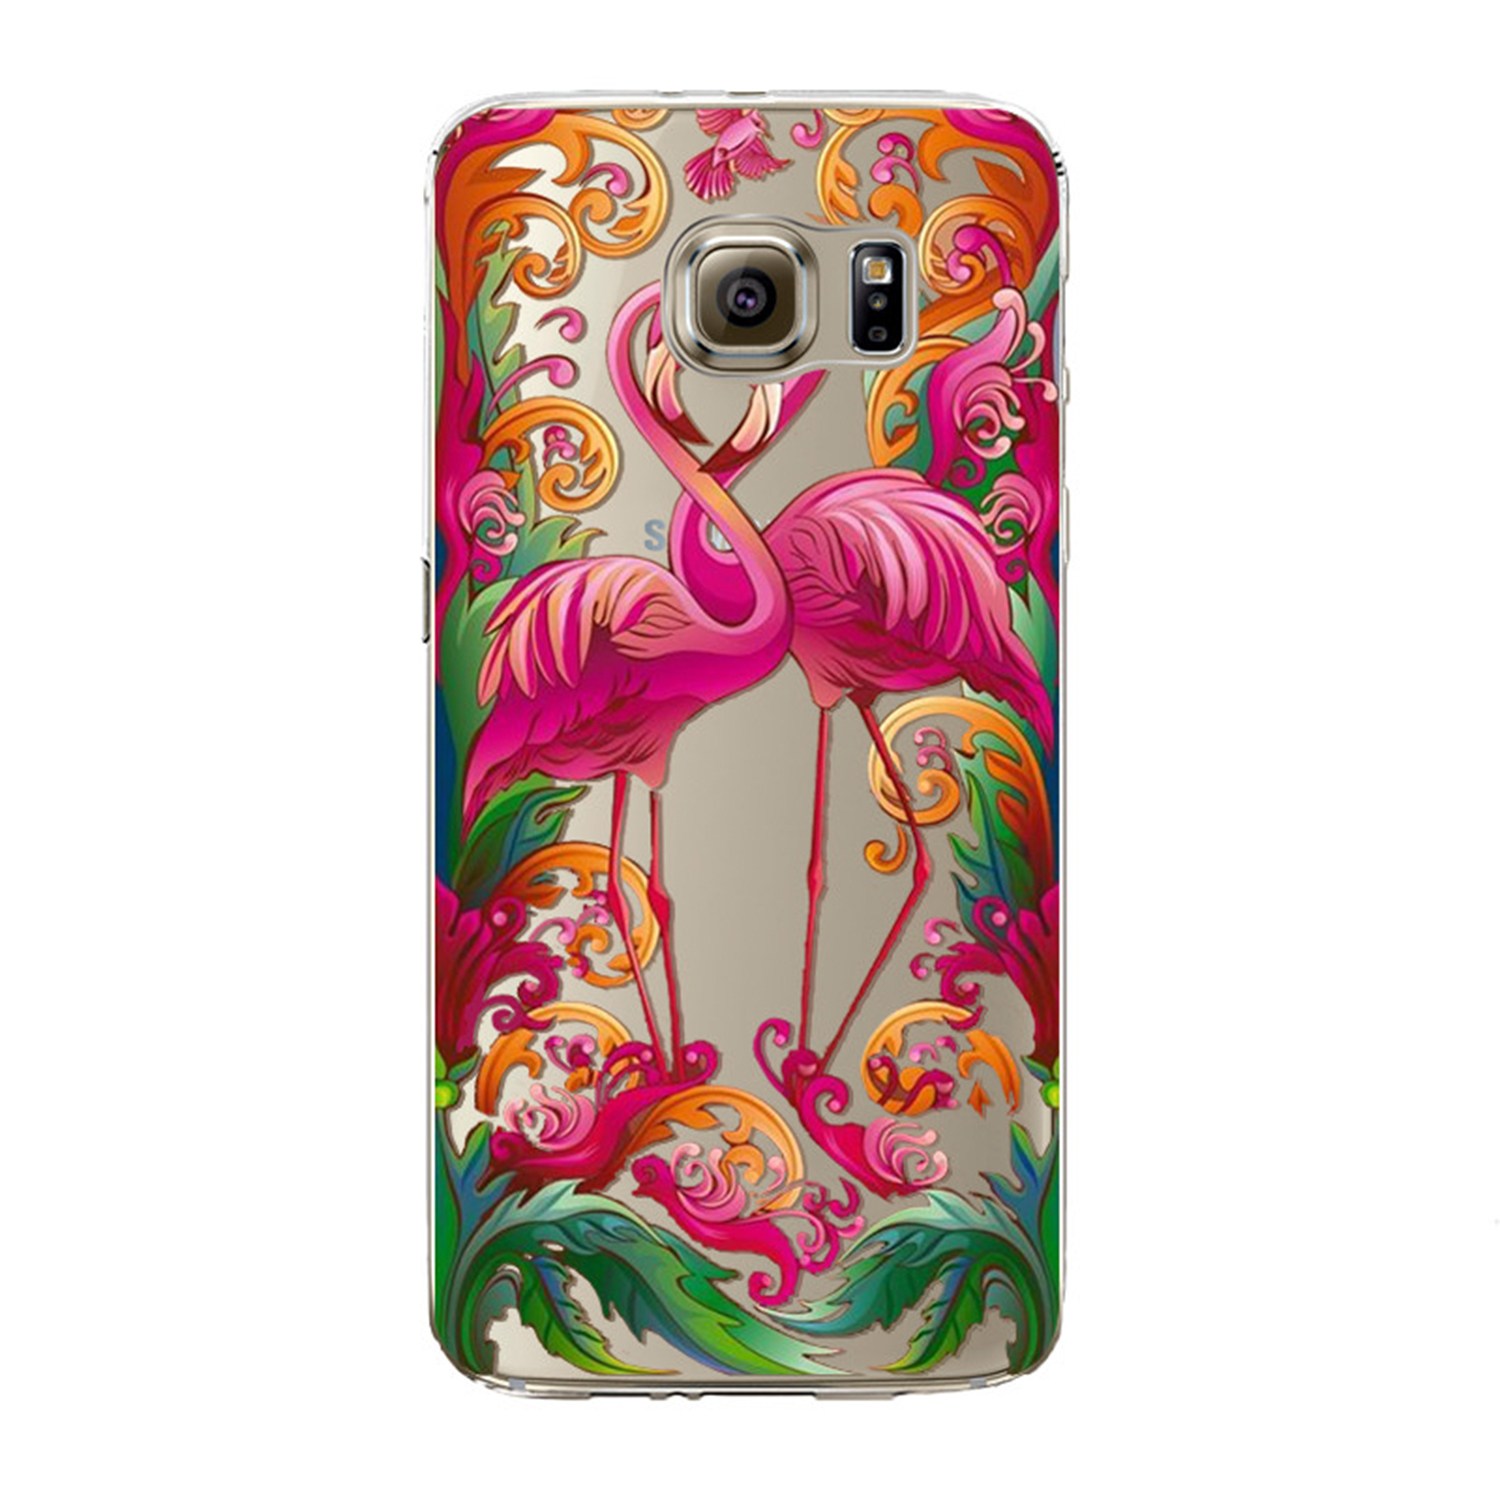 Kritzel Case Collection Galaxy S6 - Mod. 471